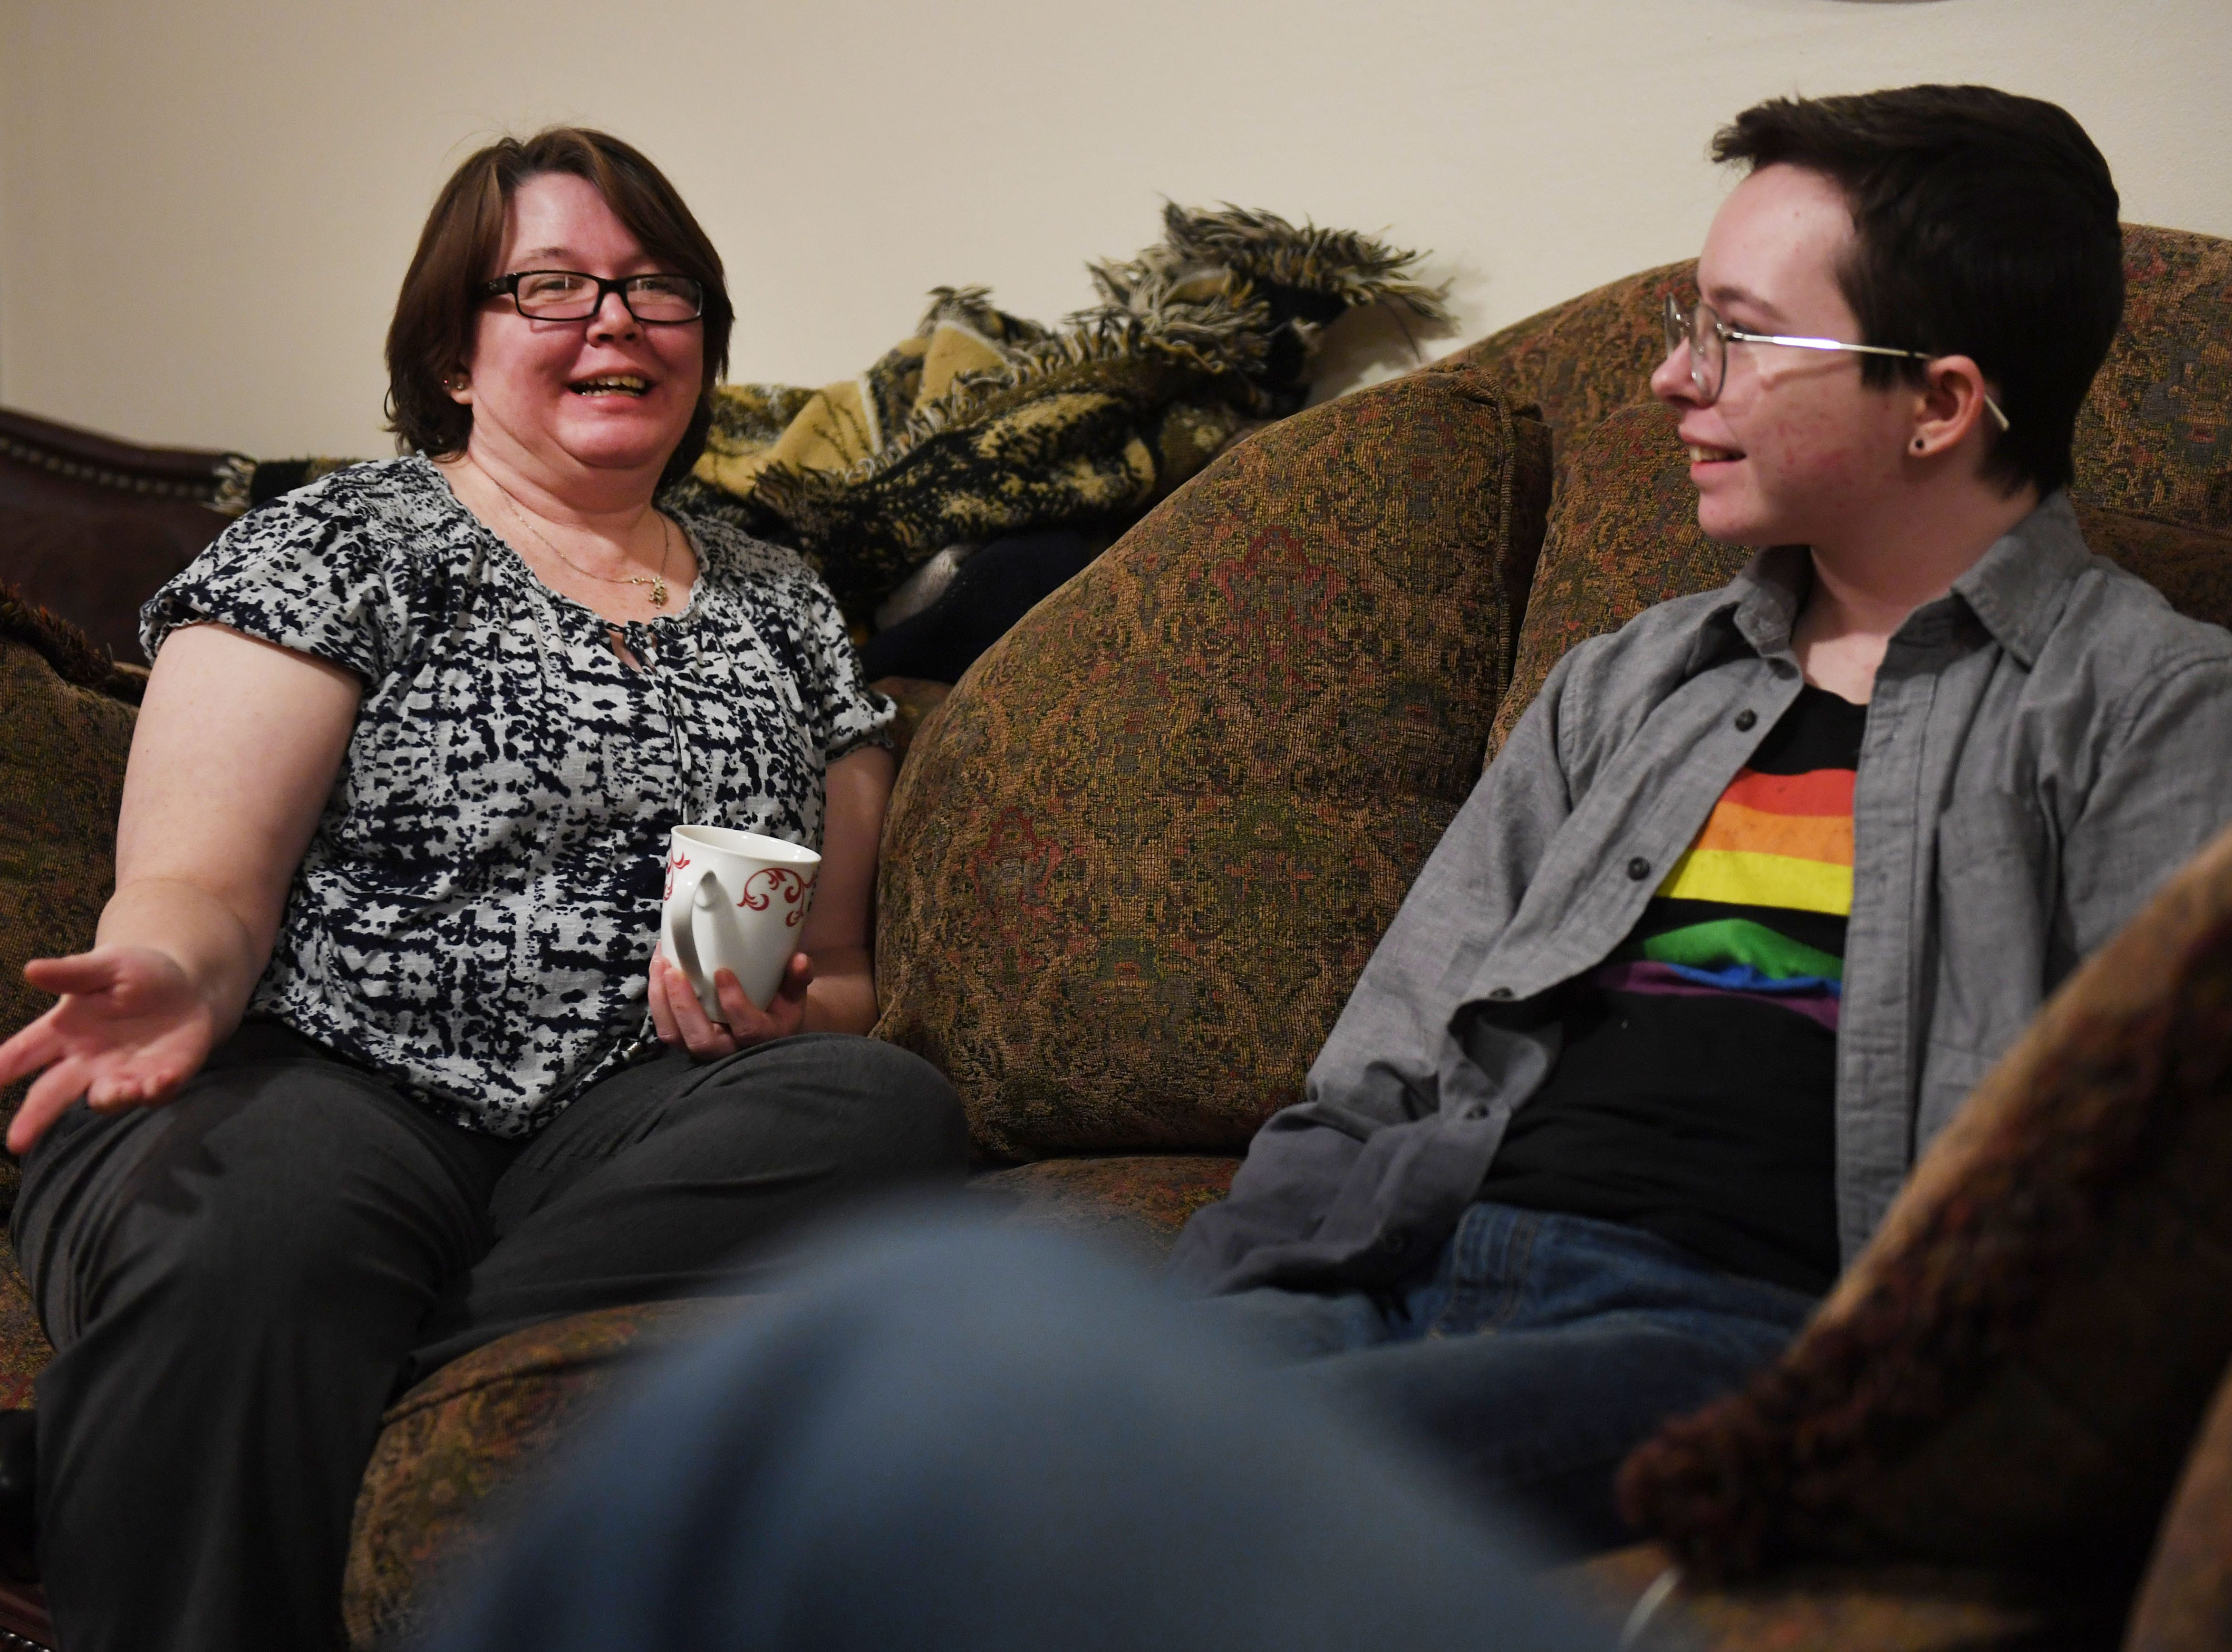 Jessica Martin and Oliver Dickman talk on Monday, Feb. 25, in Yankton about Oliver's experience transitioning.